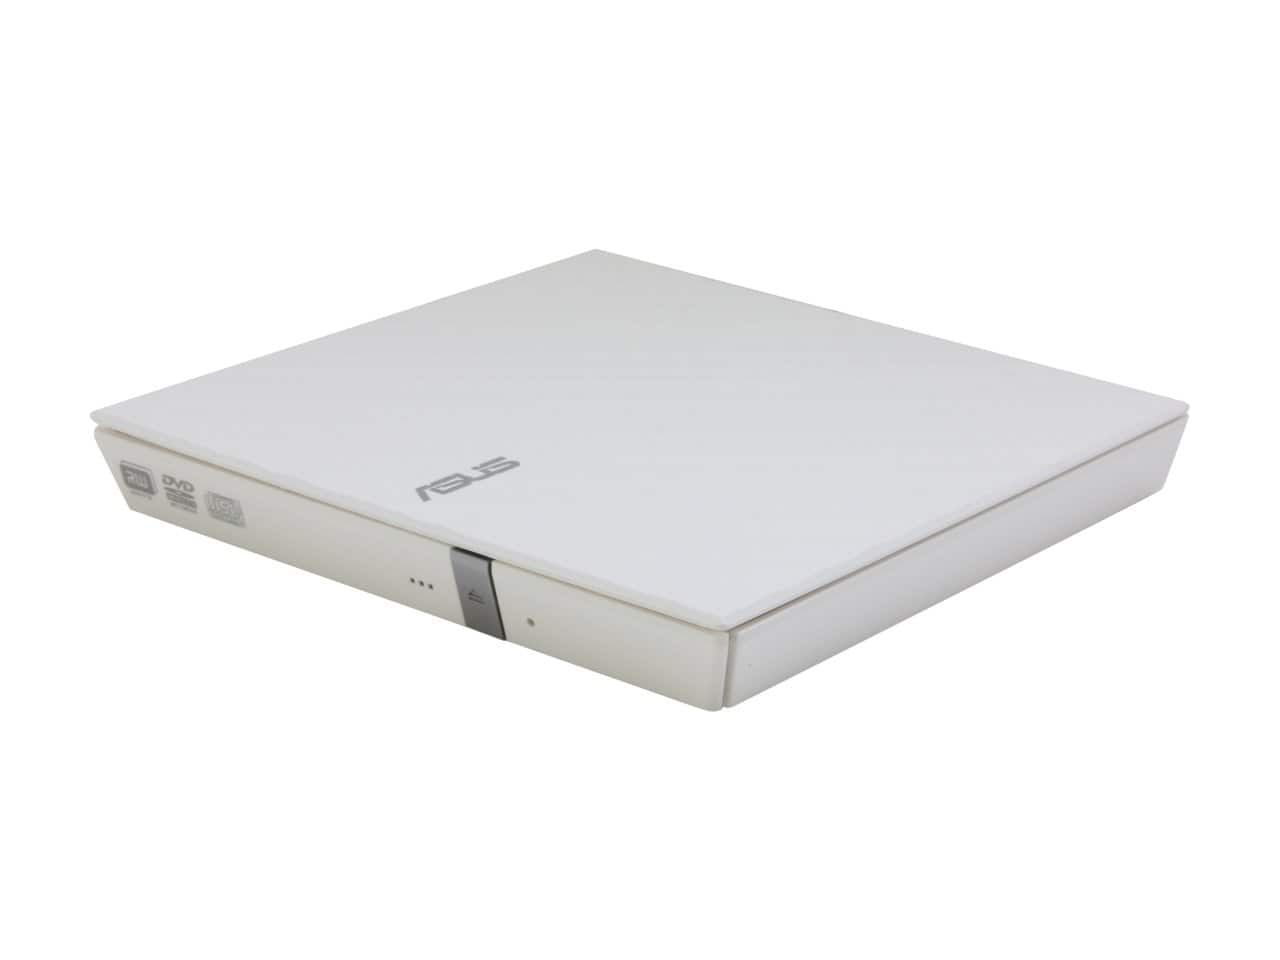 Asus 8x USB 2.0 White External Slim CD/DVD Burner for $9.99 AR or Asus 16x Black Internal SATA Blu-ray Burner for $39.99 AR + S&H & More @ Newegg.com